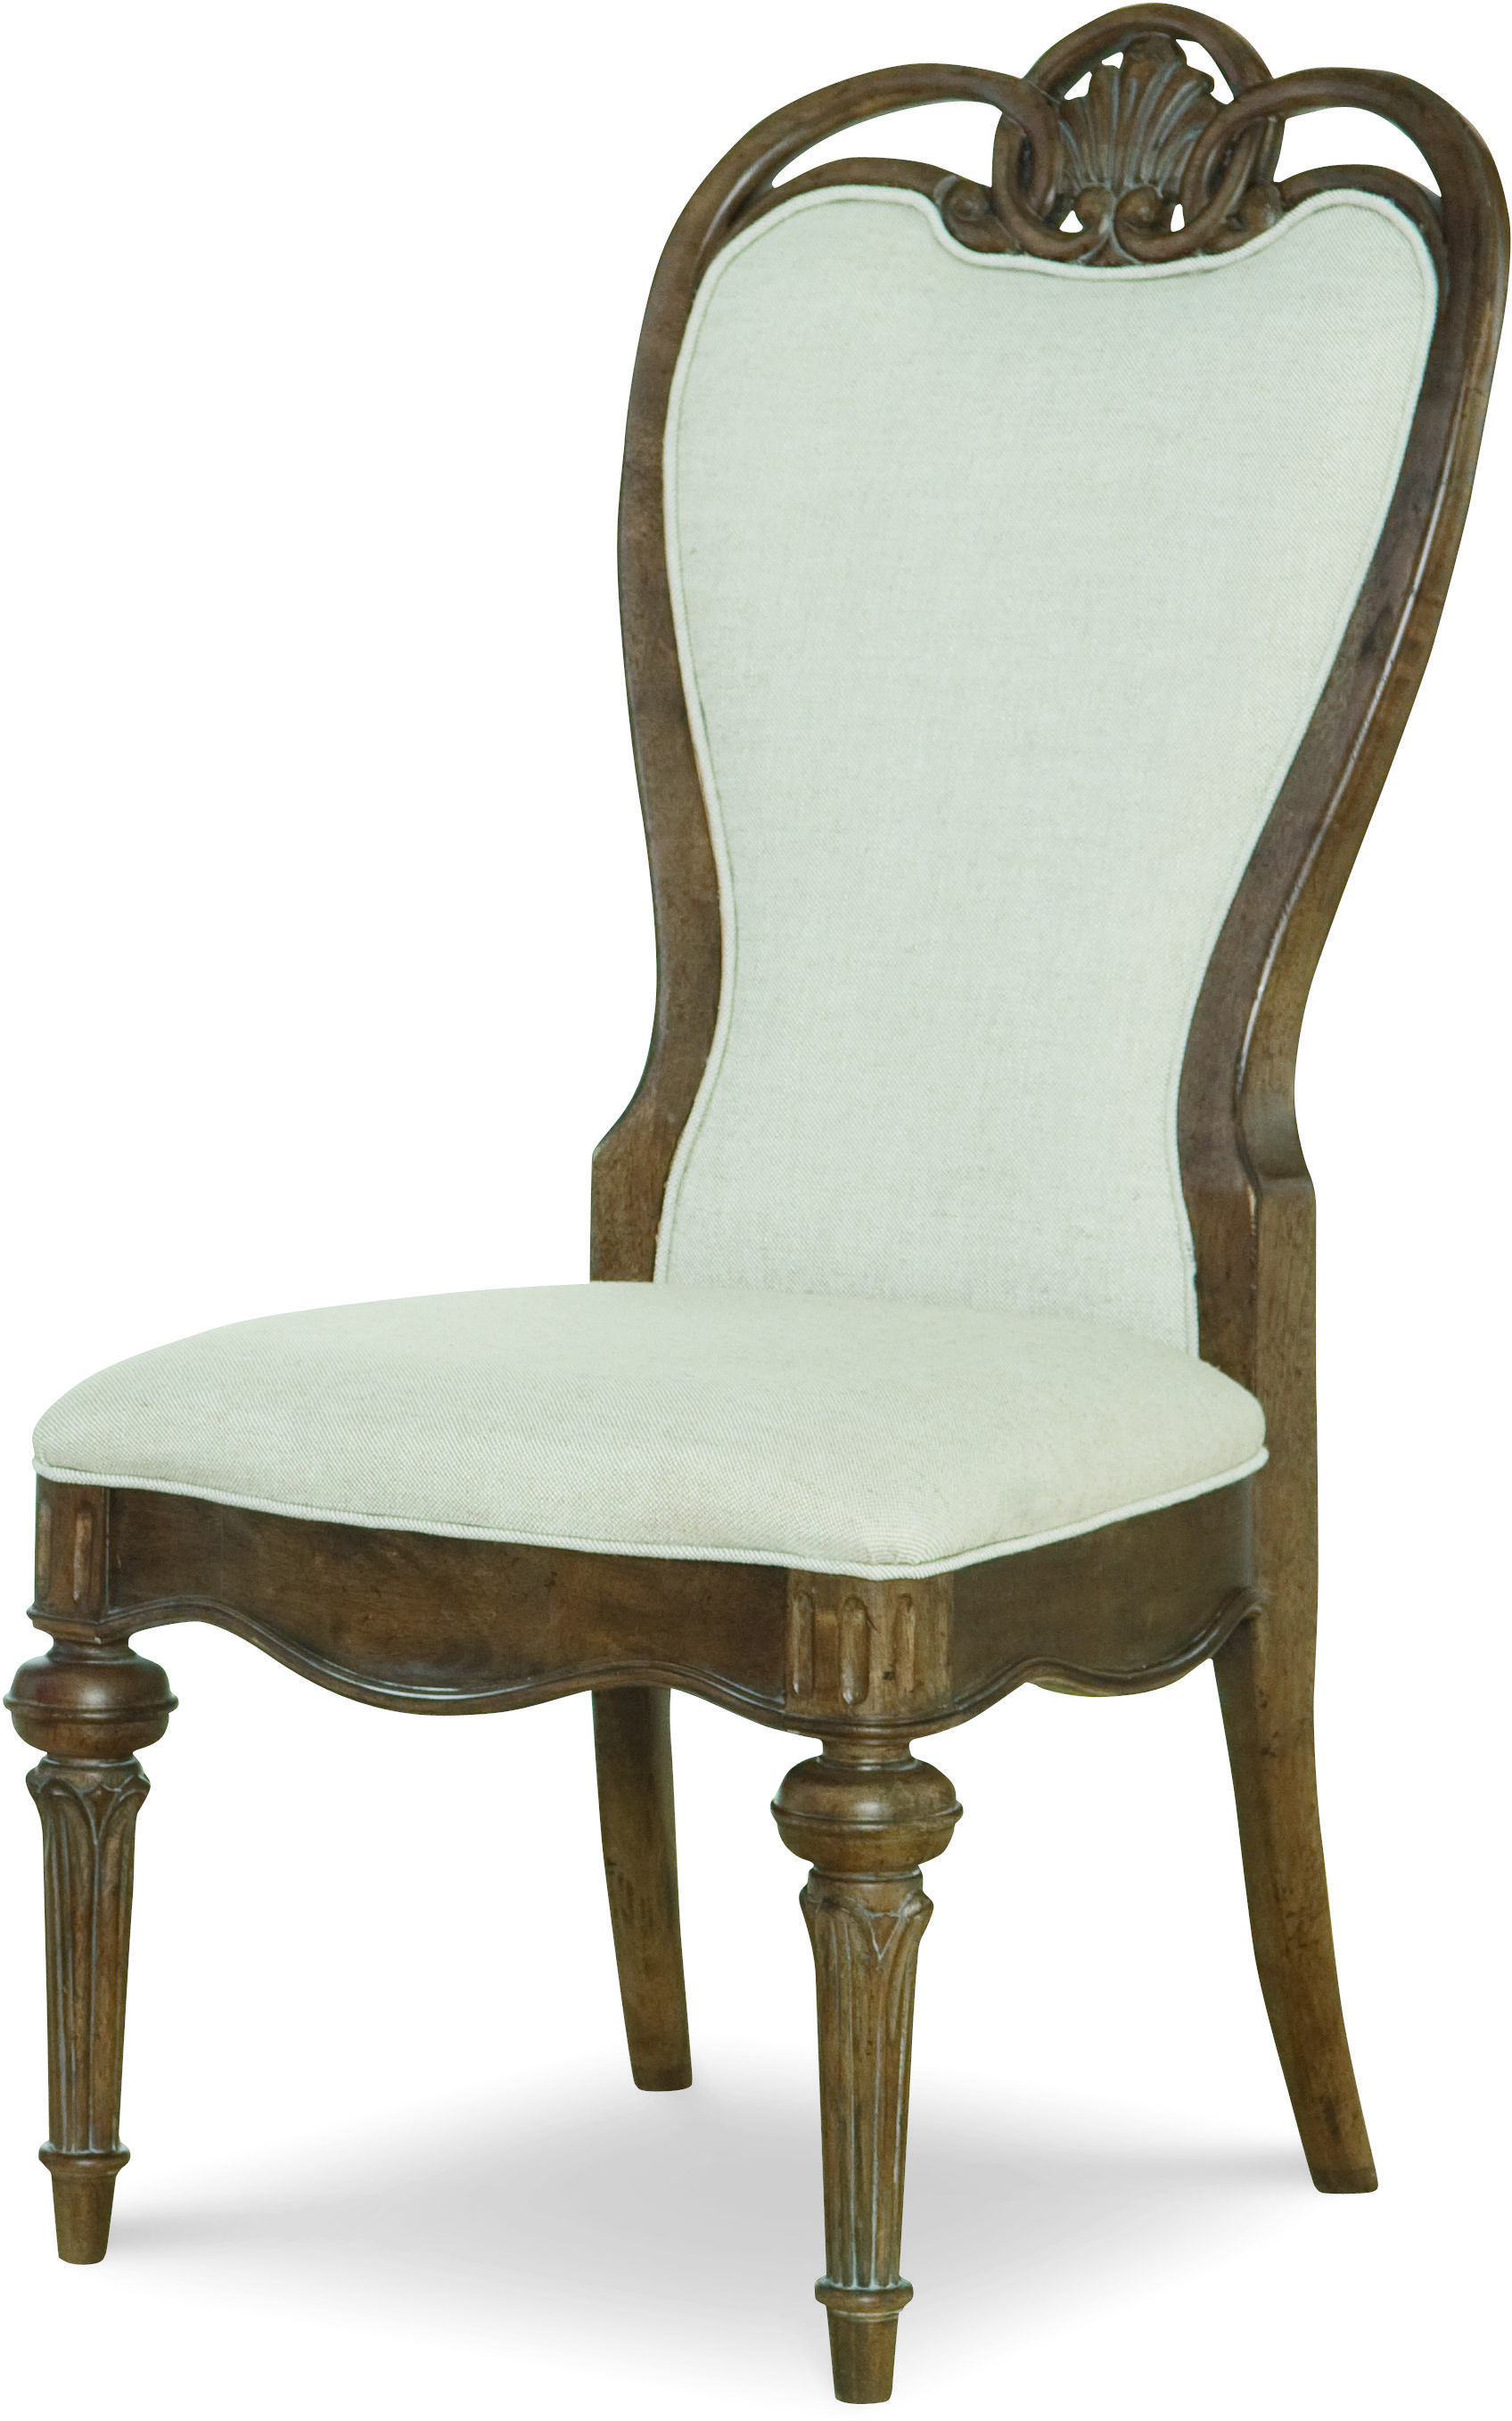 Legacy Classic Renaissance Upholstered Back Side Chair  - Item Number: 5500-240 KD